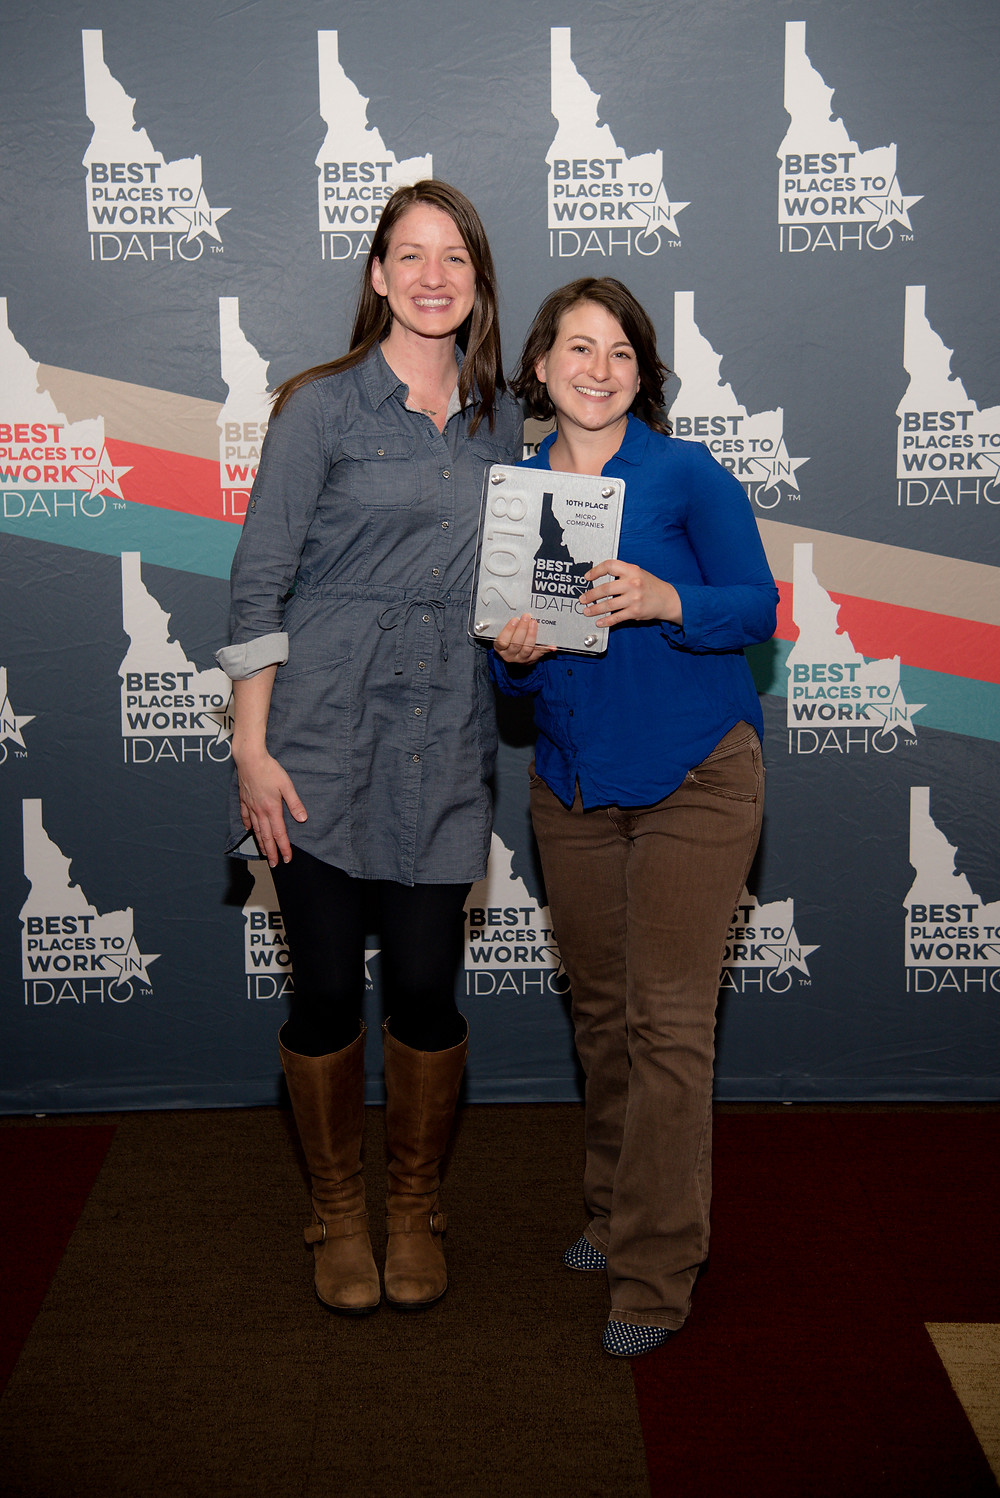 Karen and Jess accept the 2018 Top 10 Places to Work in Idaho Award on behalf of LONE CONE.